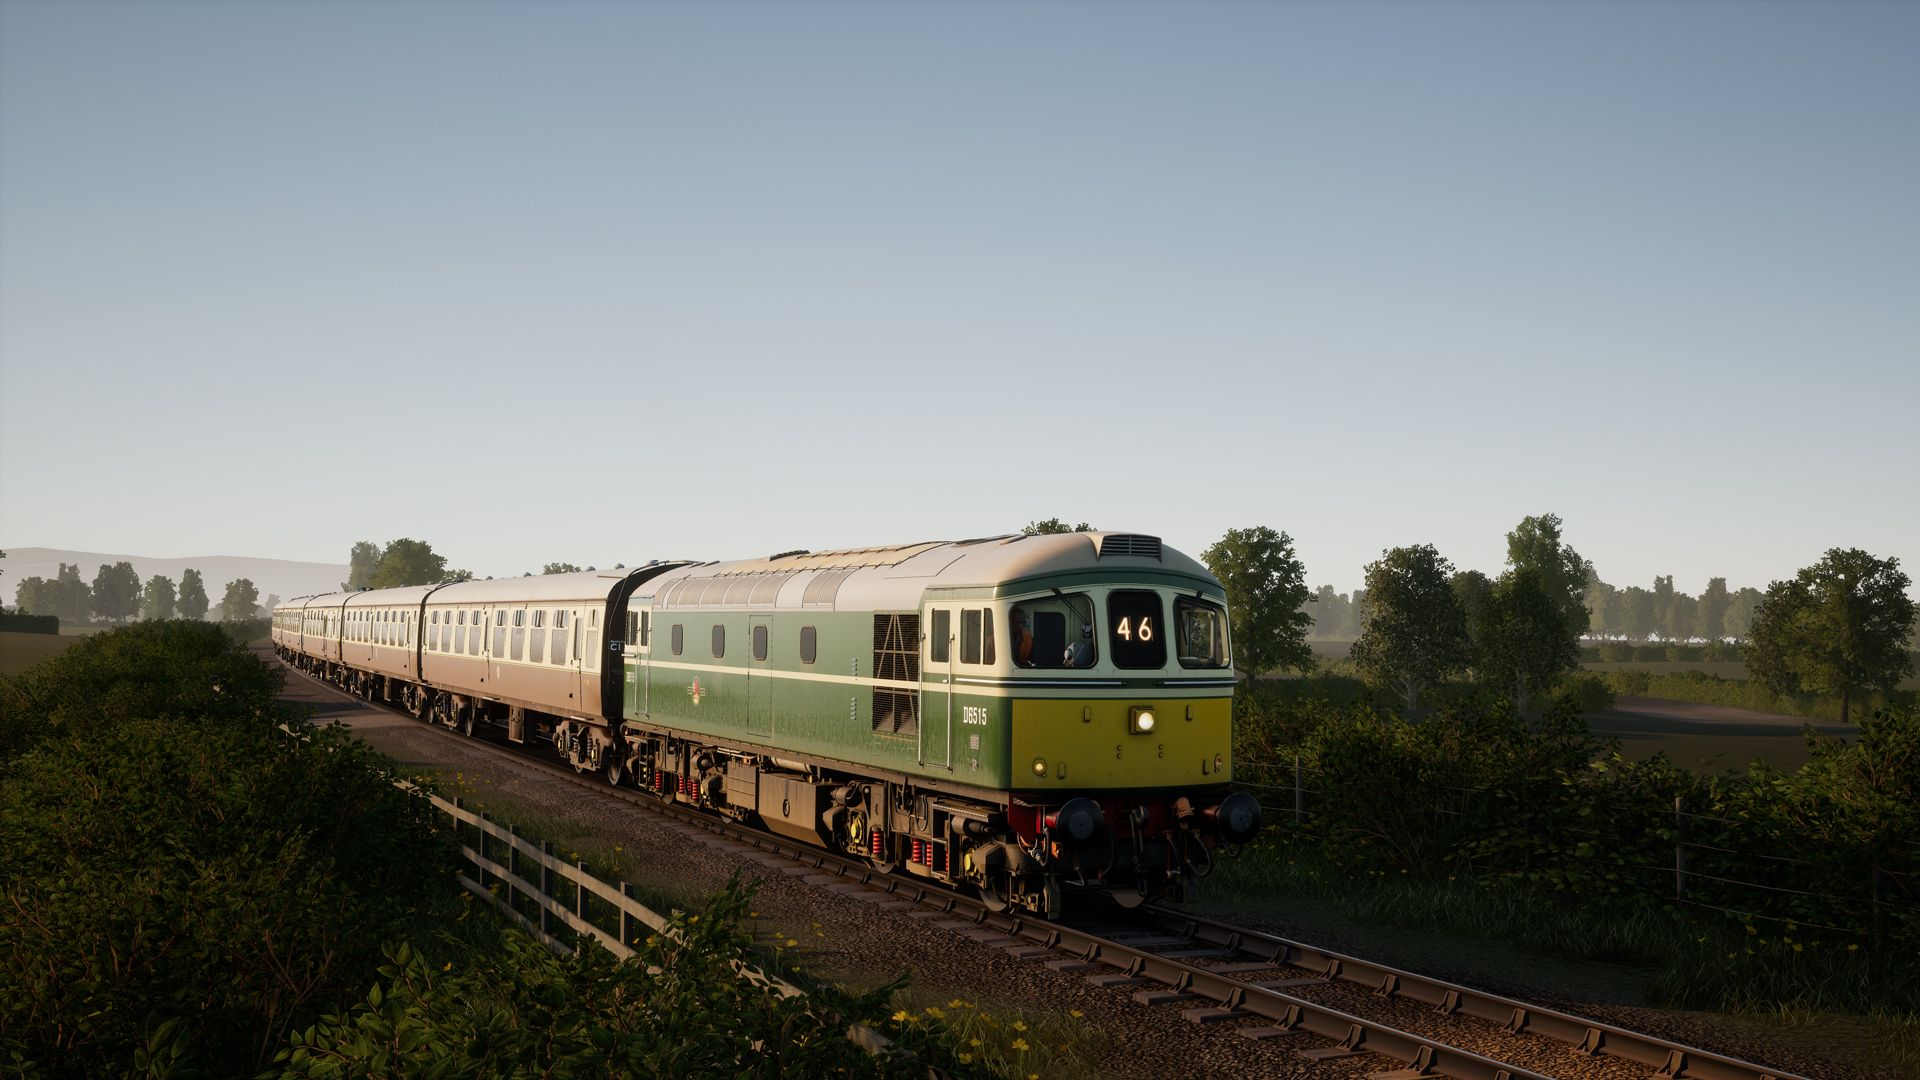 Image showing screenshot of the Class 33 locomotive in Train Sim World